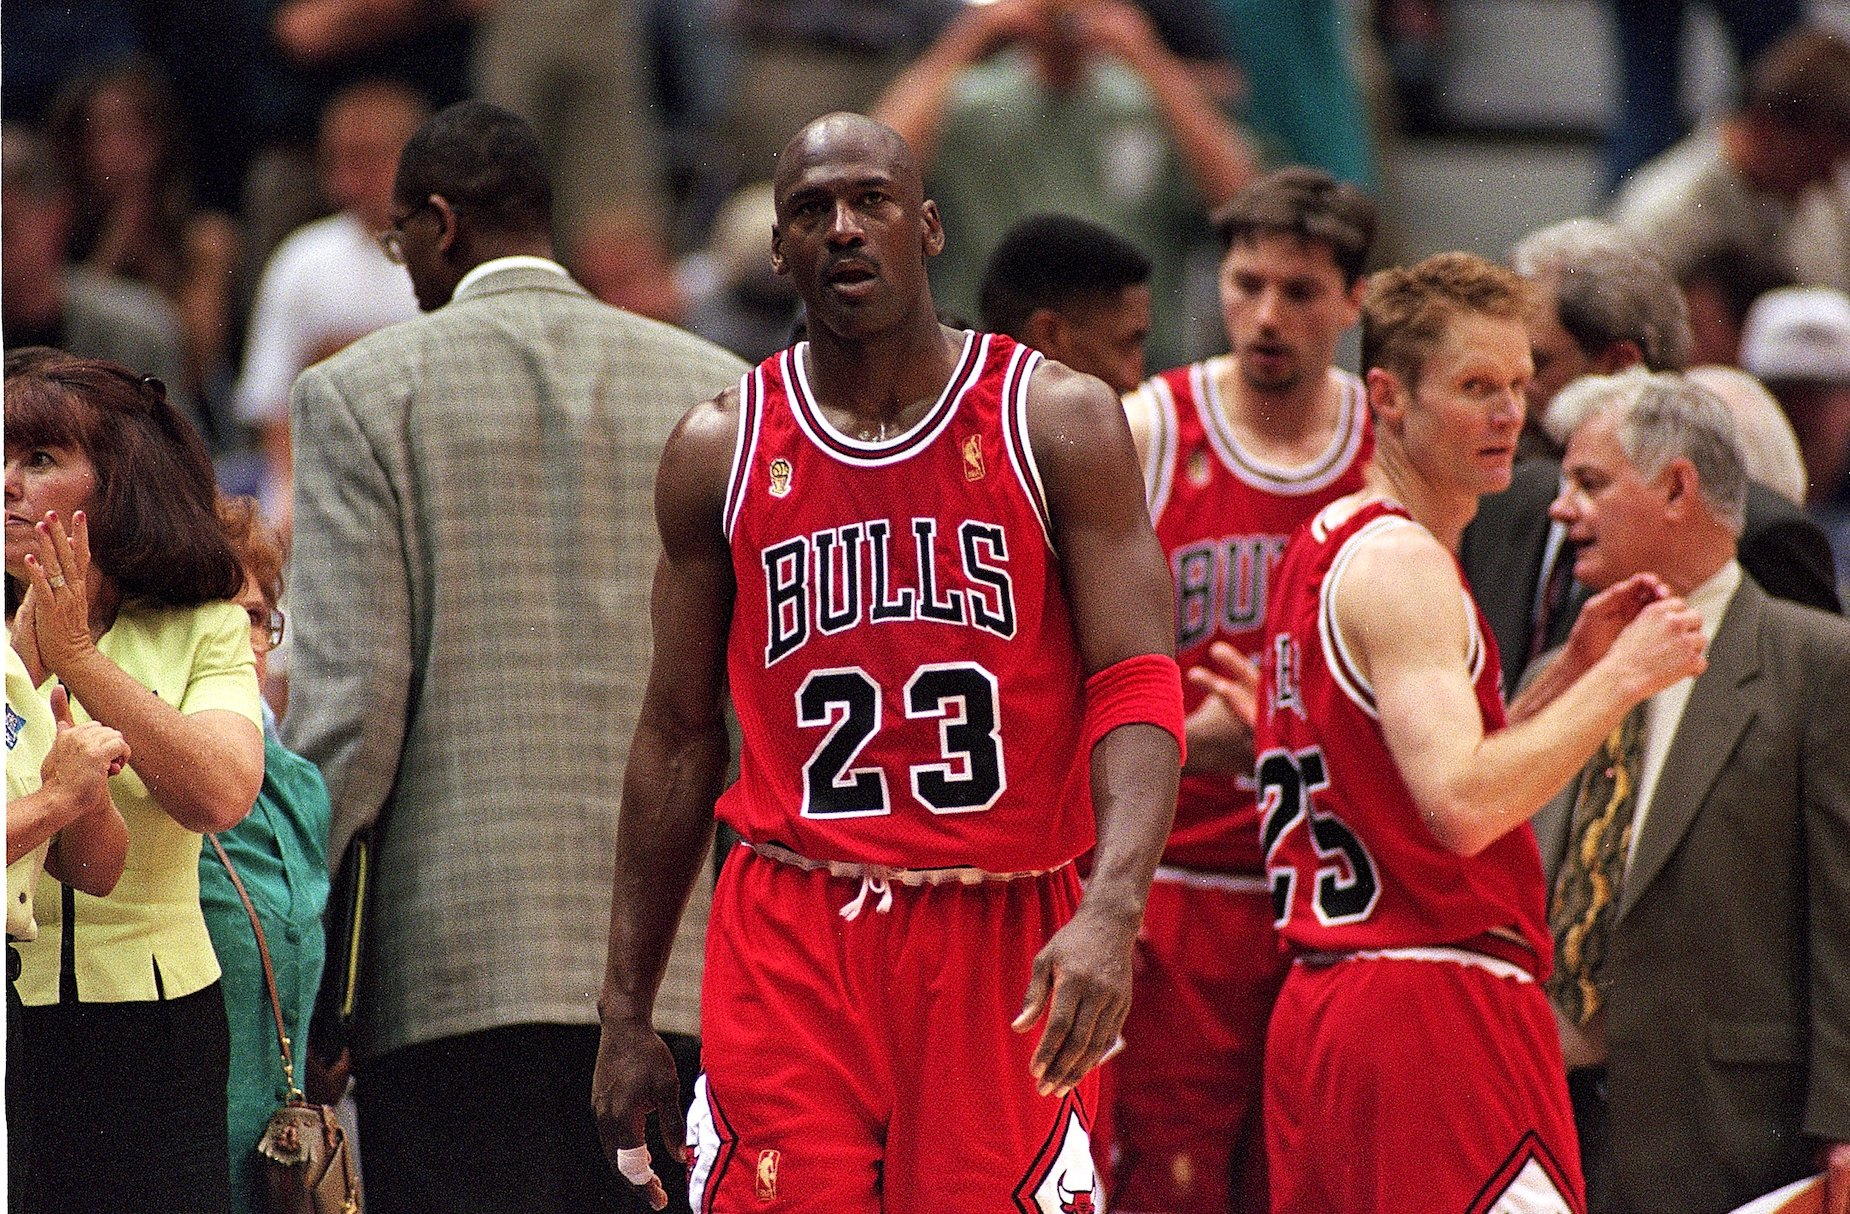 Michael Jordan in action for the Chicago Bulls during the 1997 NBA Finals.